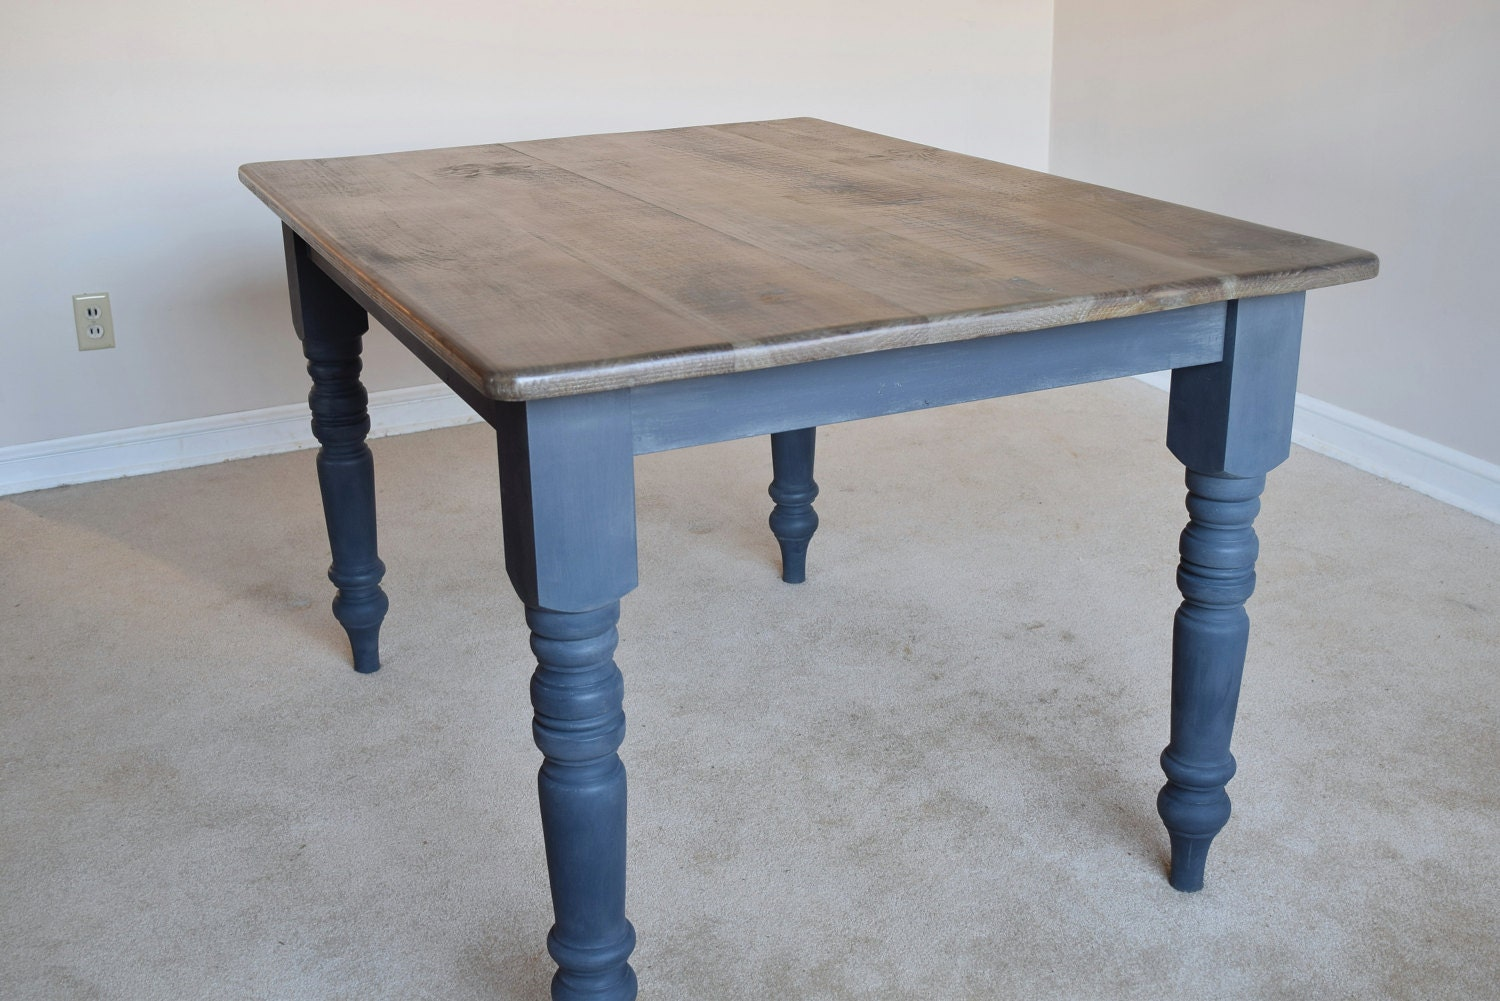 Rustic farm table kitchen dining table gray wash top zoom geotapseo Images